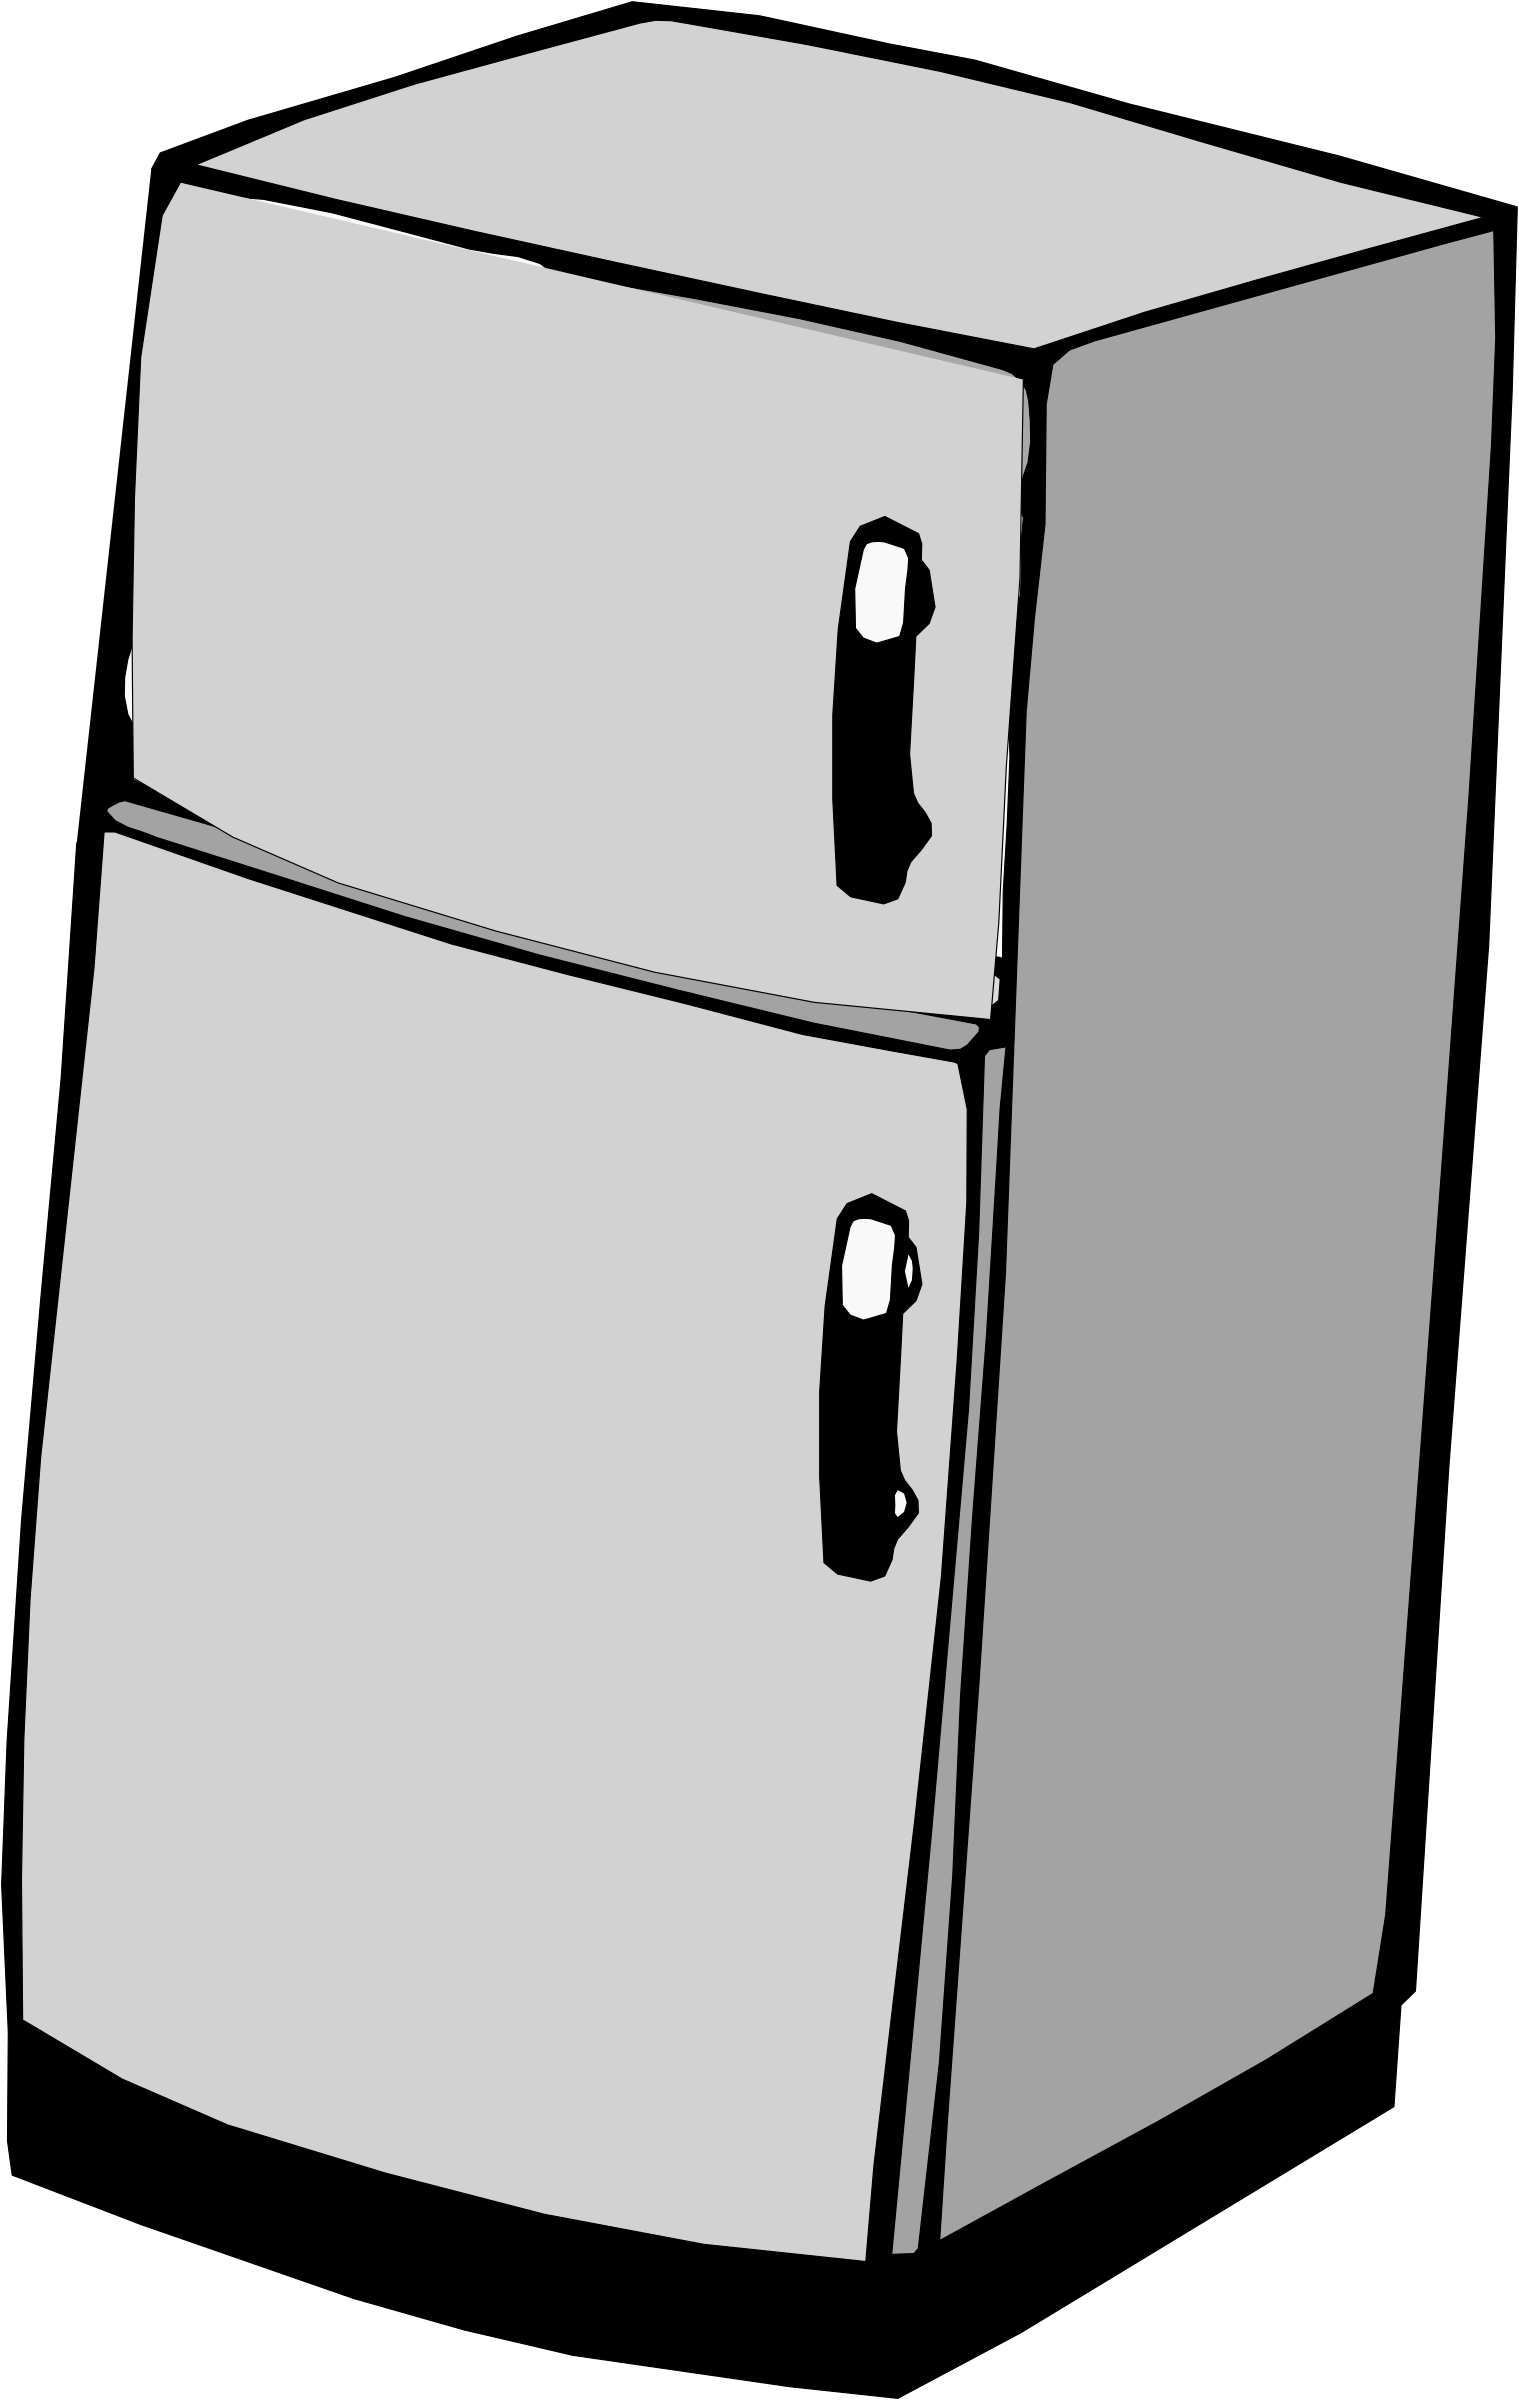 Refrigerator clipart ice box. Icons png free and